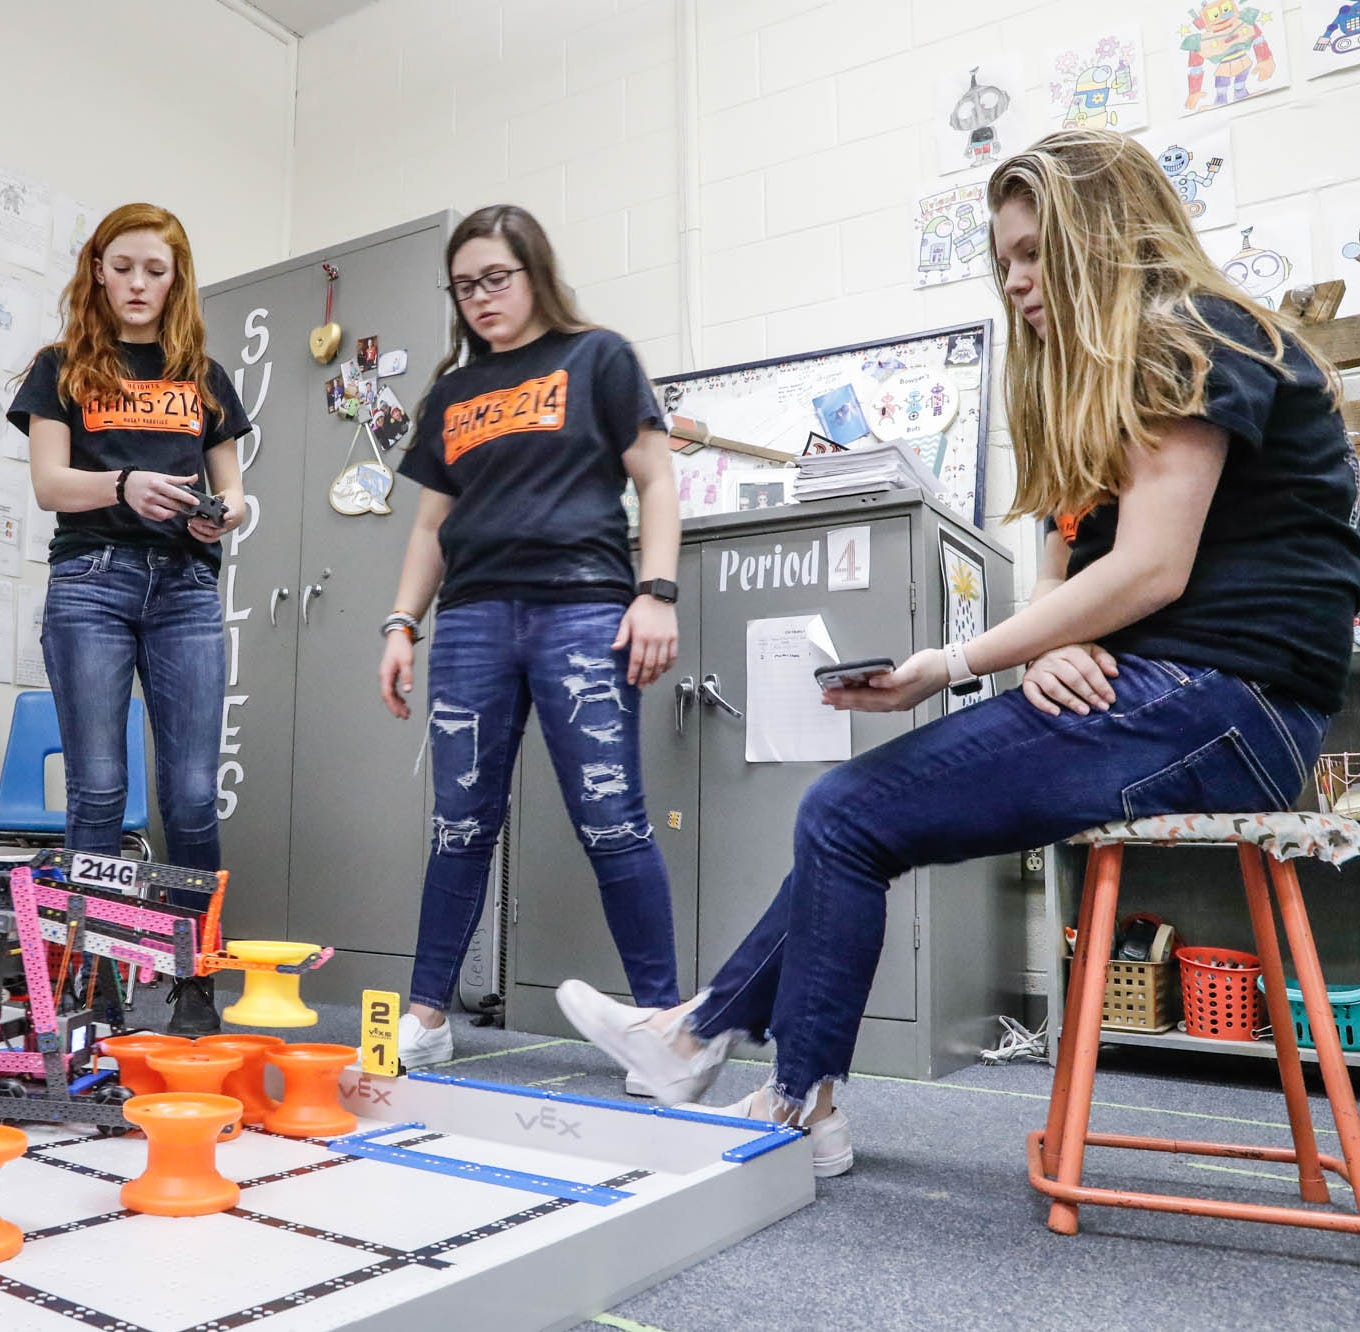 'It's not just for boys': Meet the all-girls robotics team that won a state championship